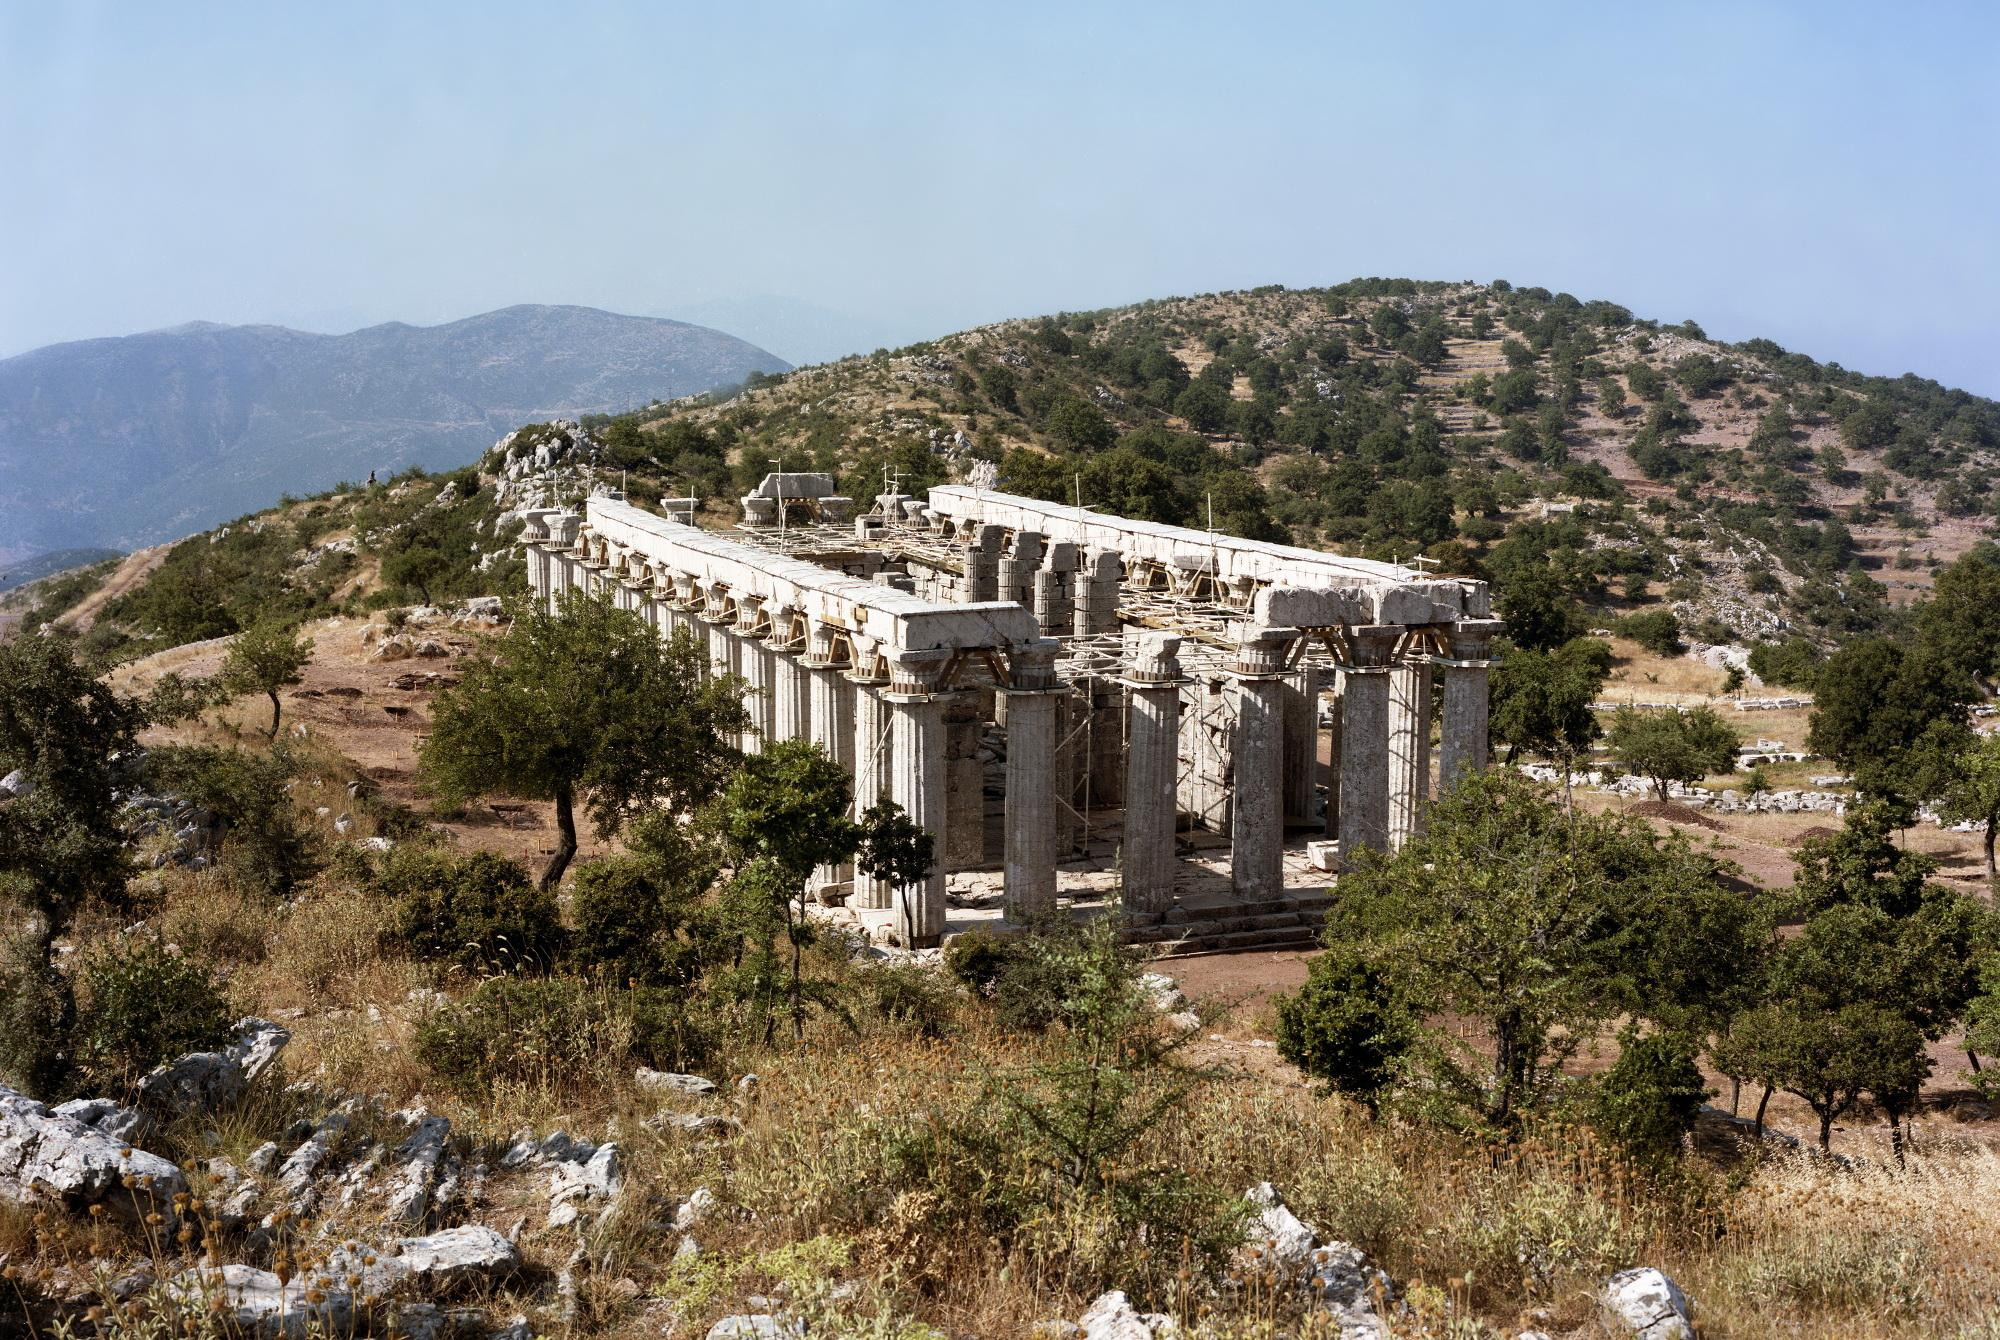 The Temple of Apollo Epikourios is the only temple of the Antiquity to combine three architectural orders: the Doric, Ionic, and Corinthian styles. – © Hellenic Ministry of Culture and Sports / Ephorate of Antiquities of Ilia